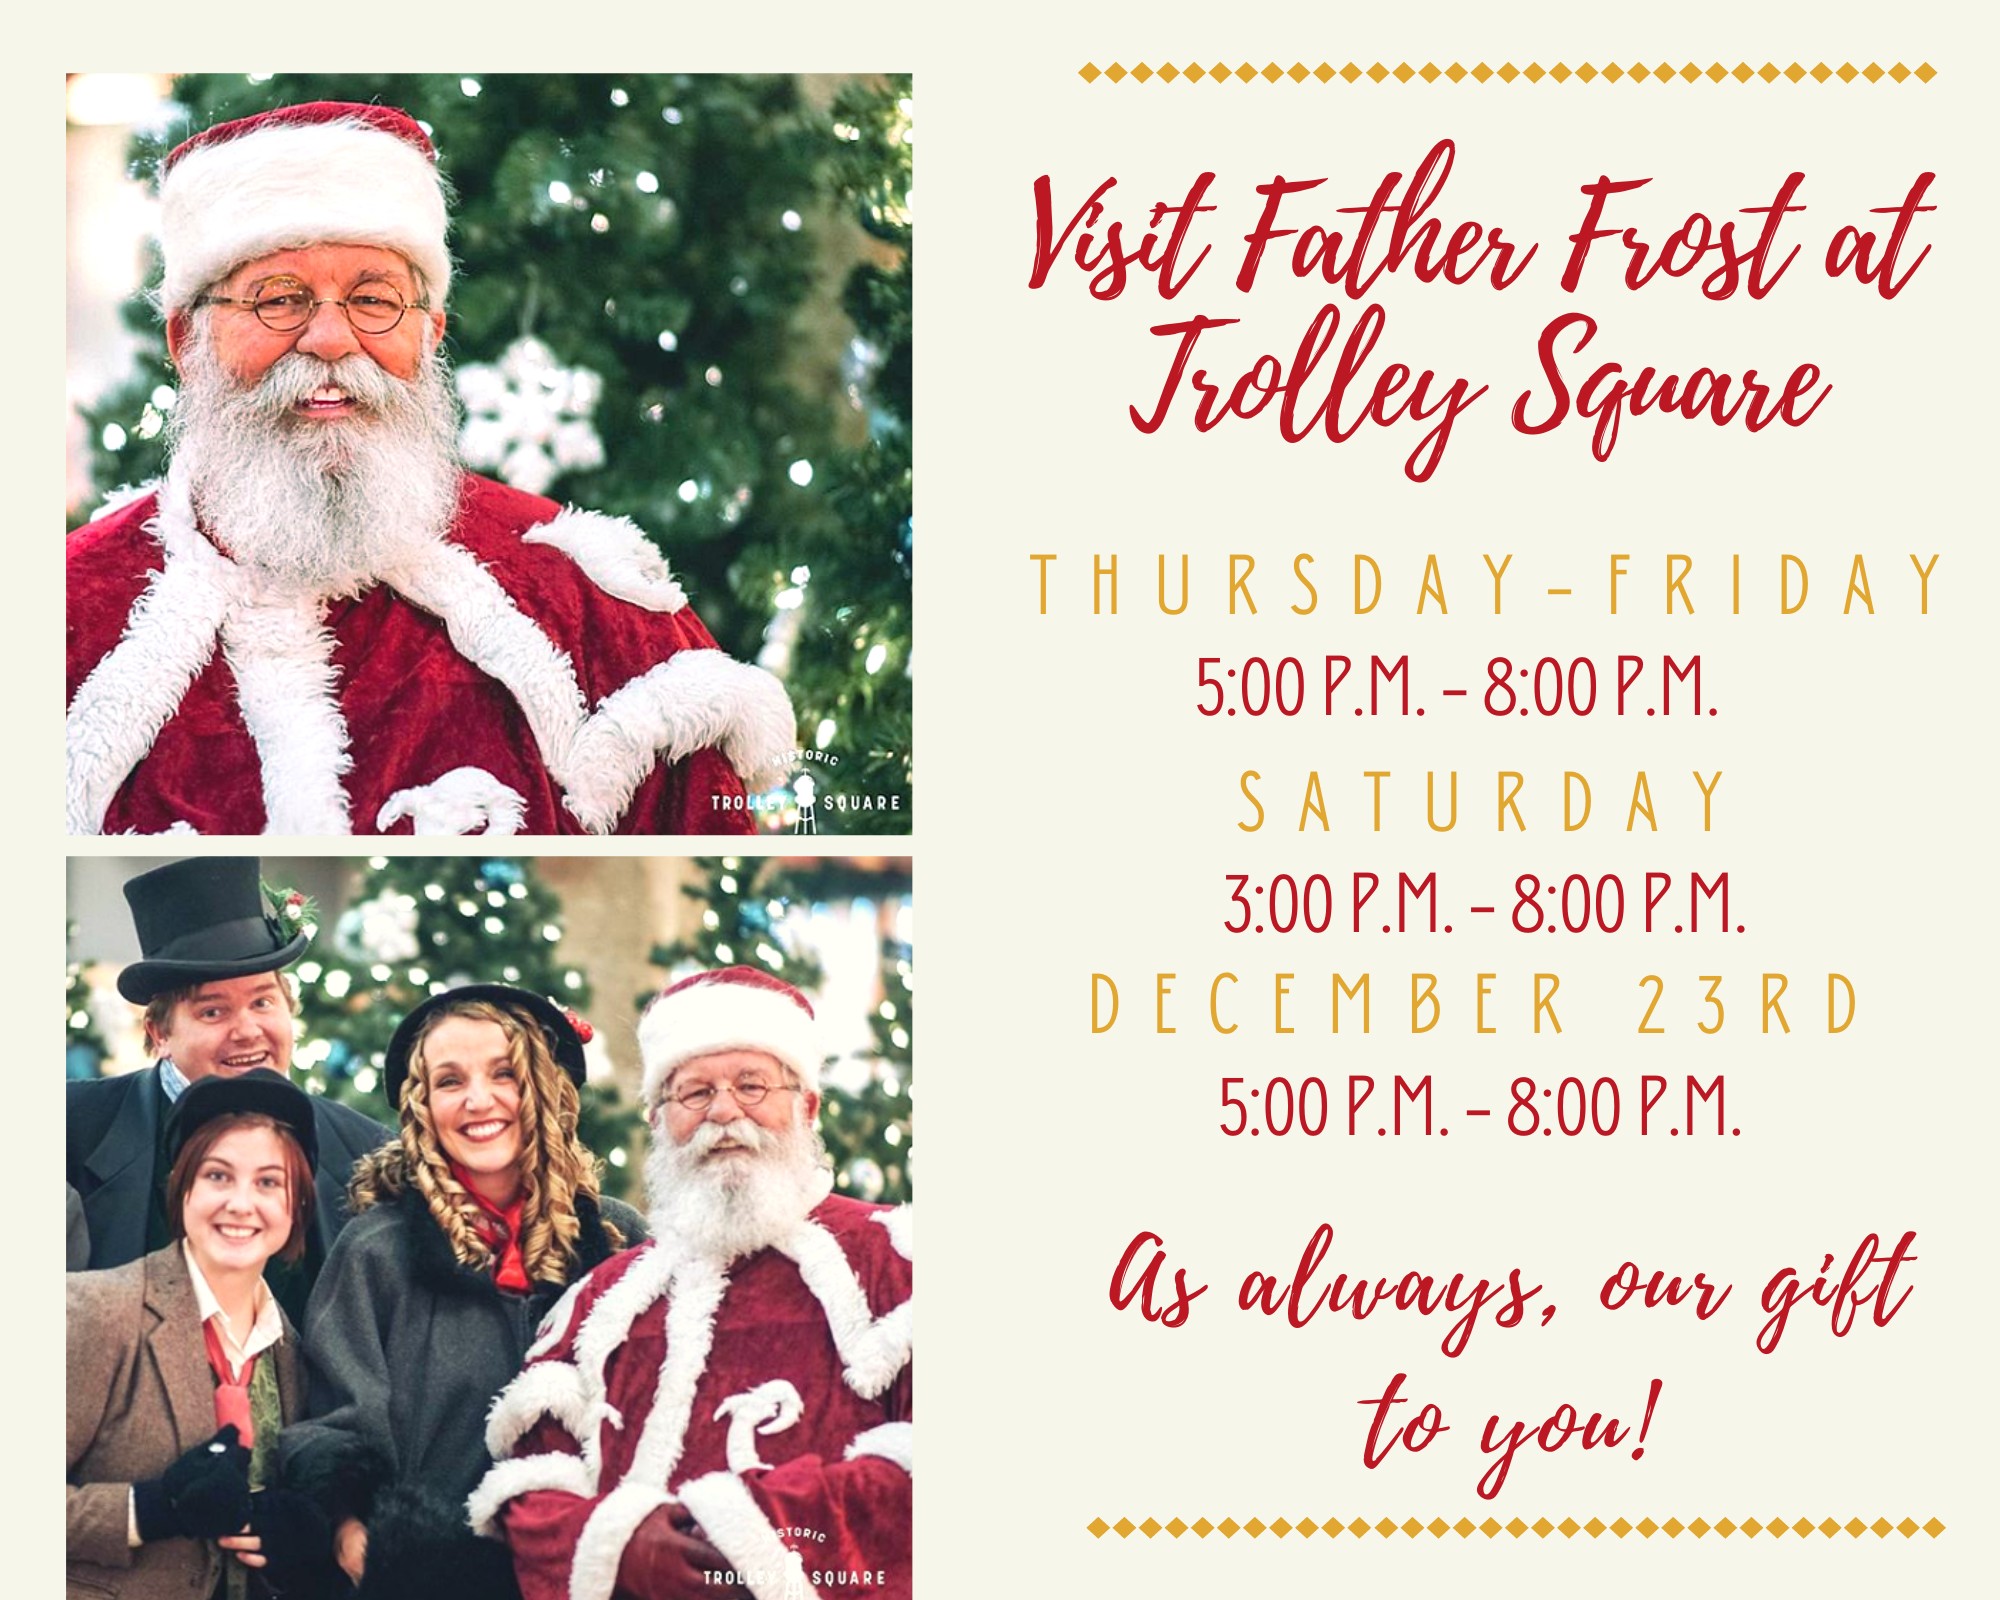 Father Christmas Trolley Square 2020 Father Frost — Trolley Square